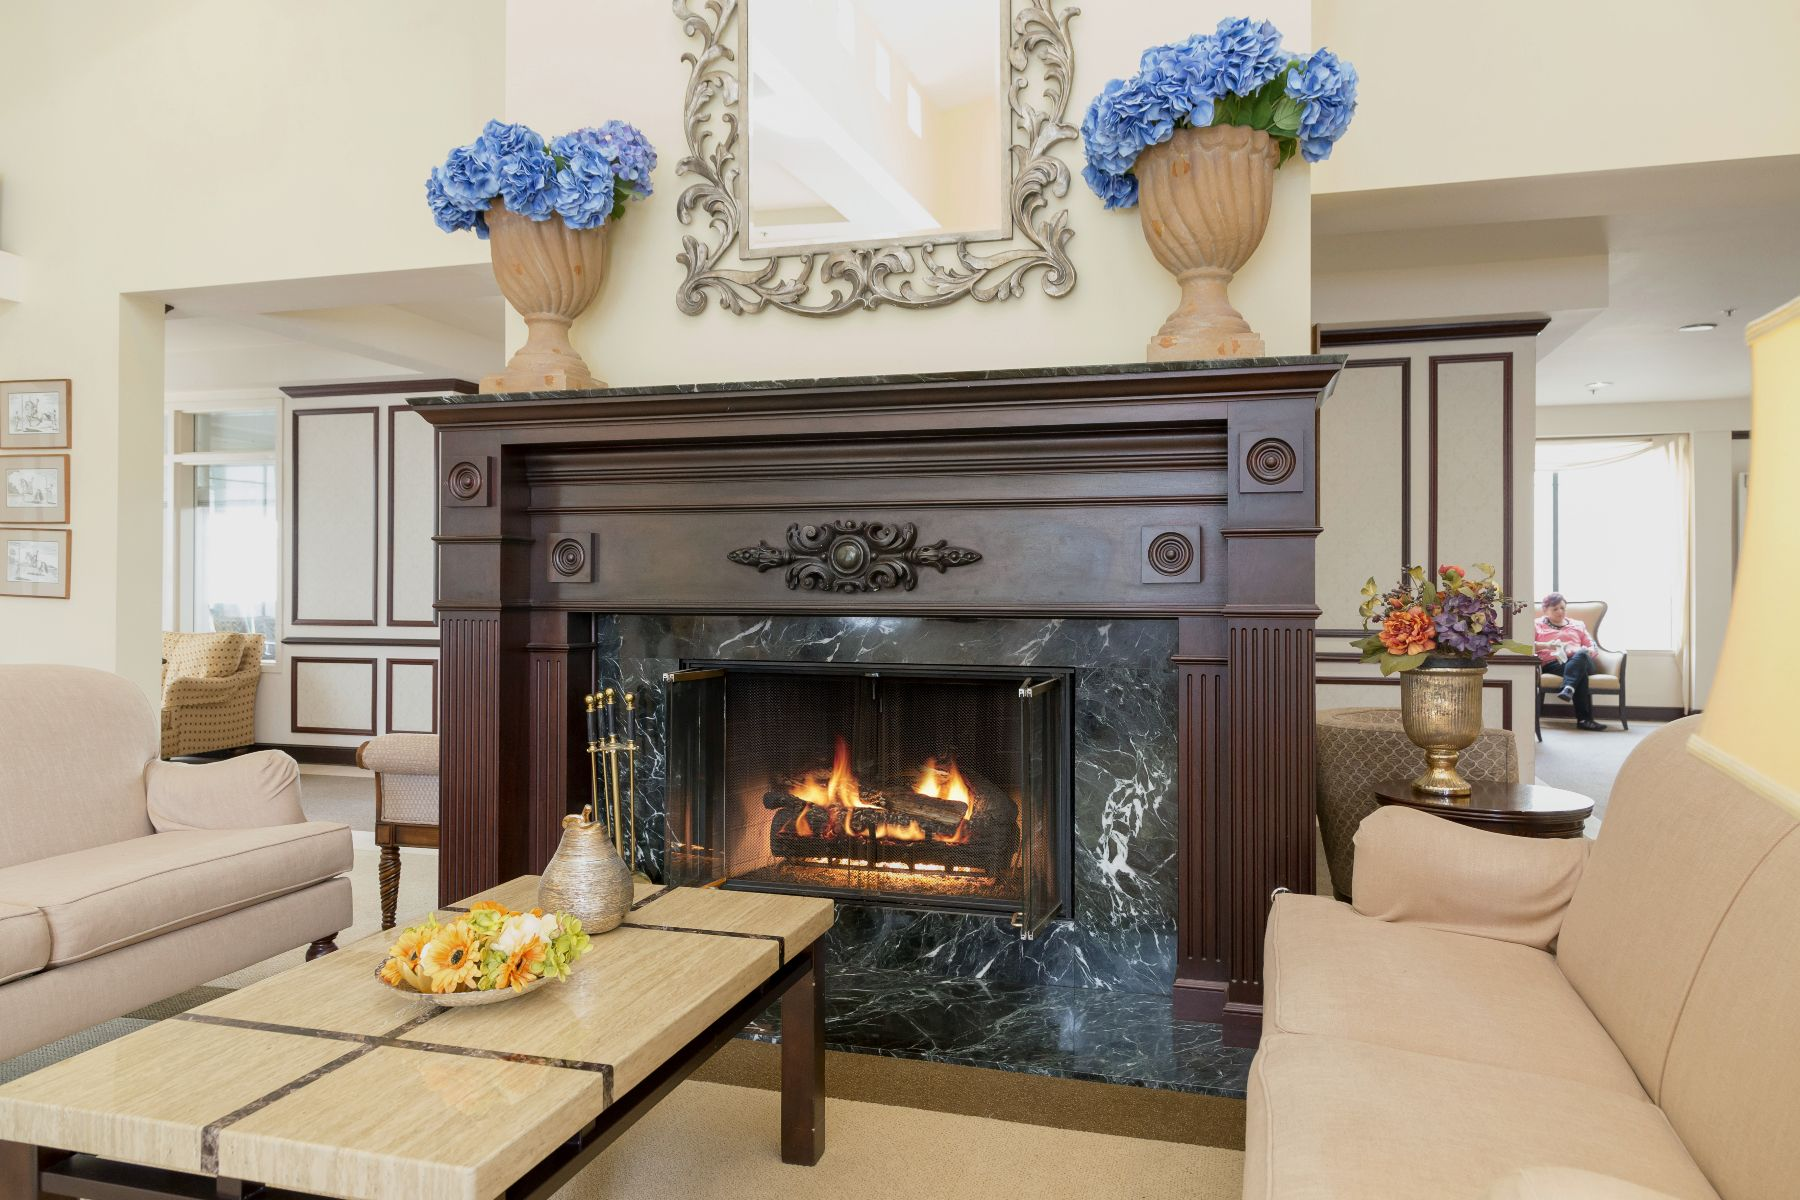 about sterling court sterling court rental community for